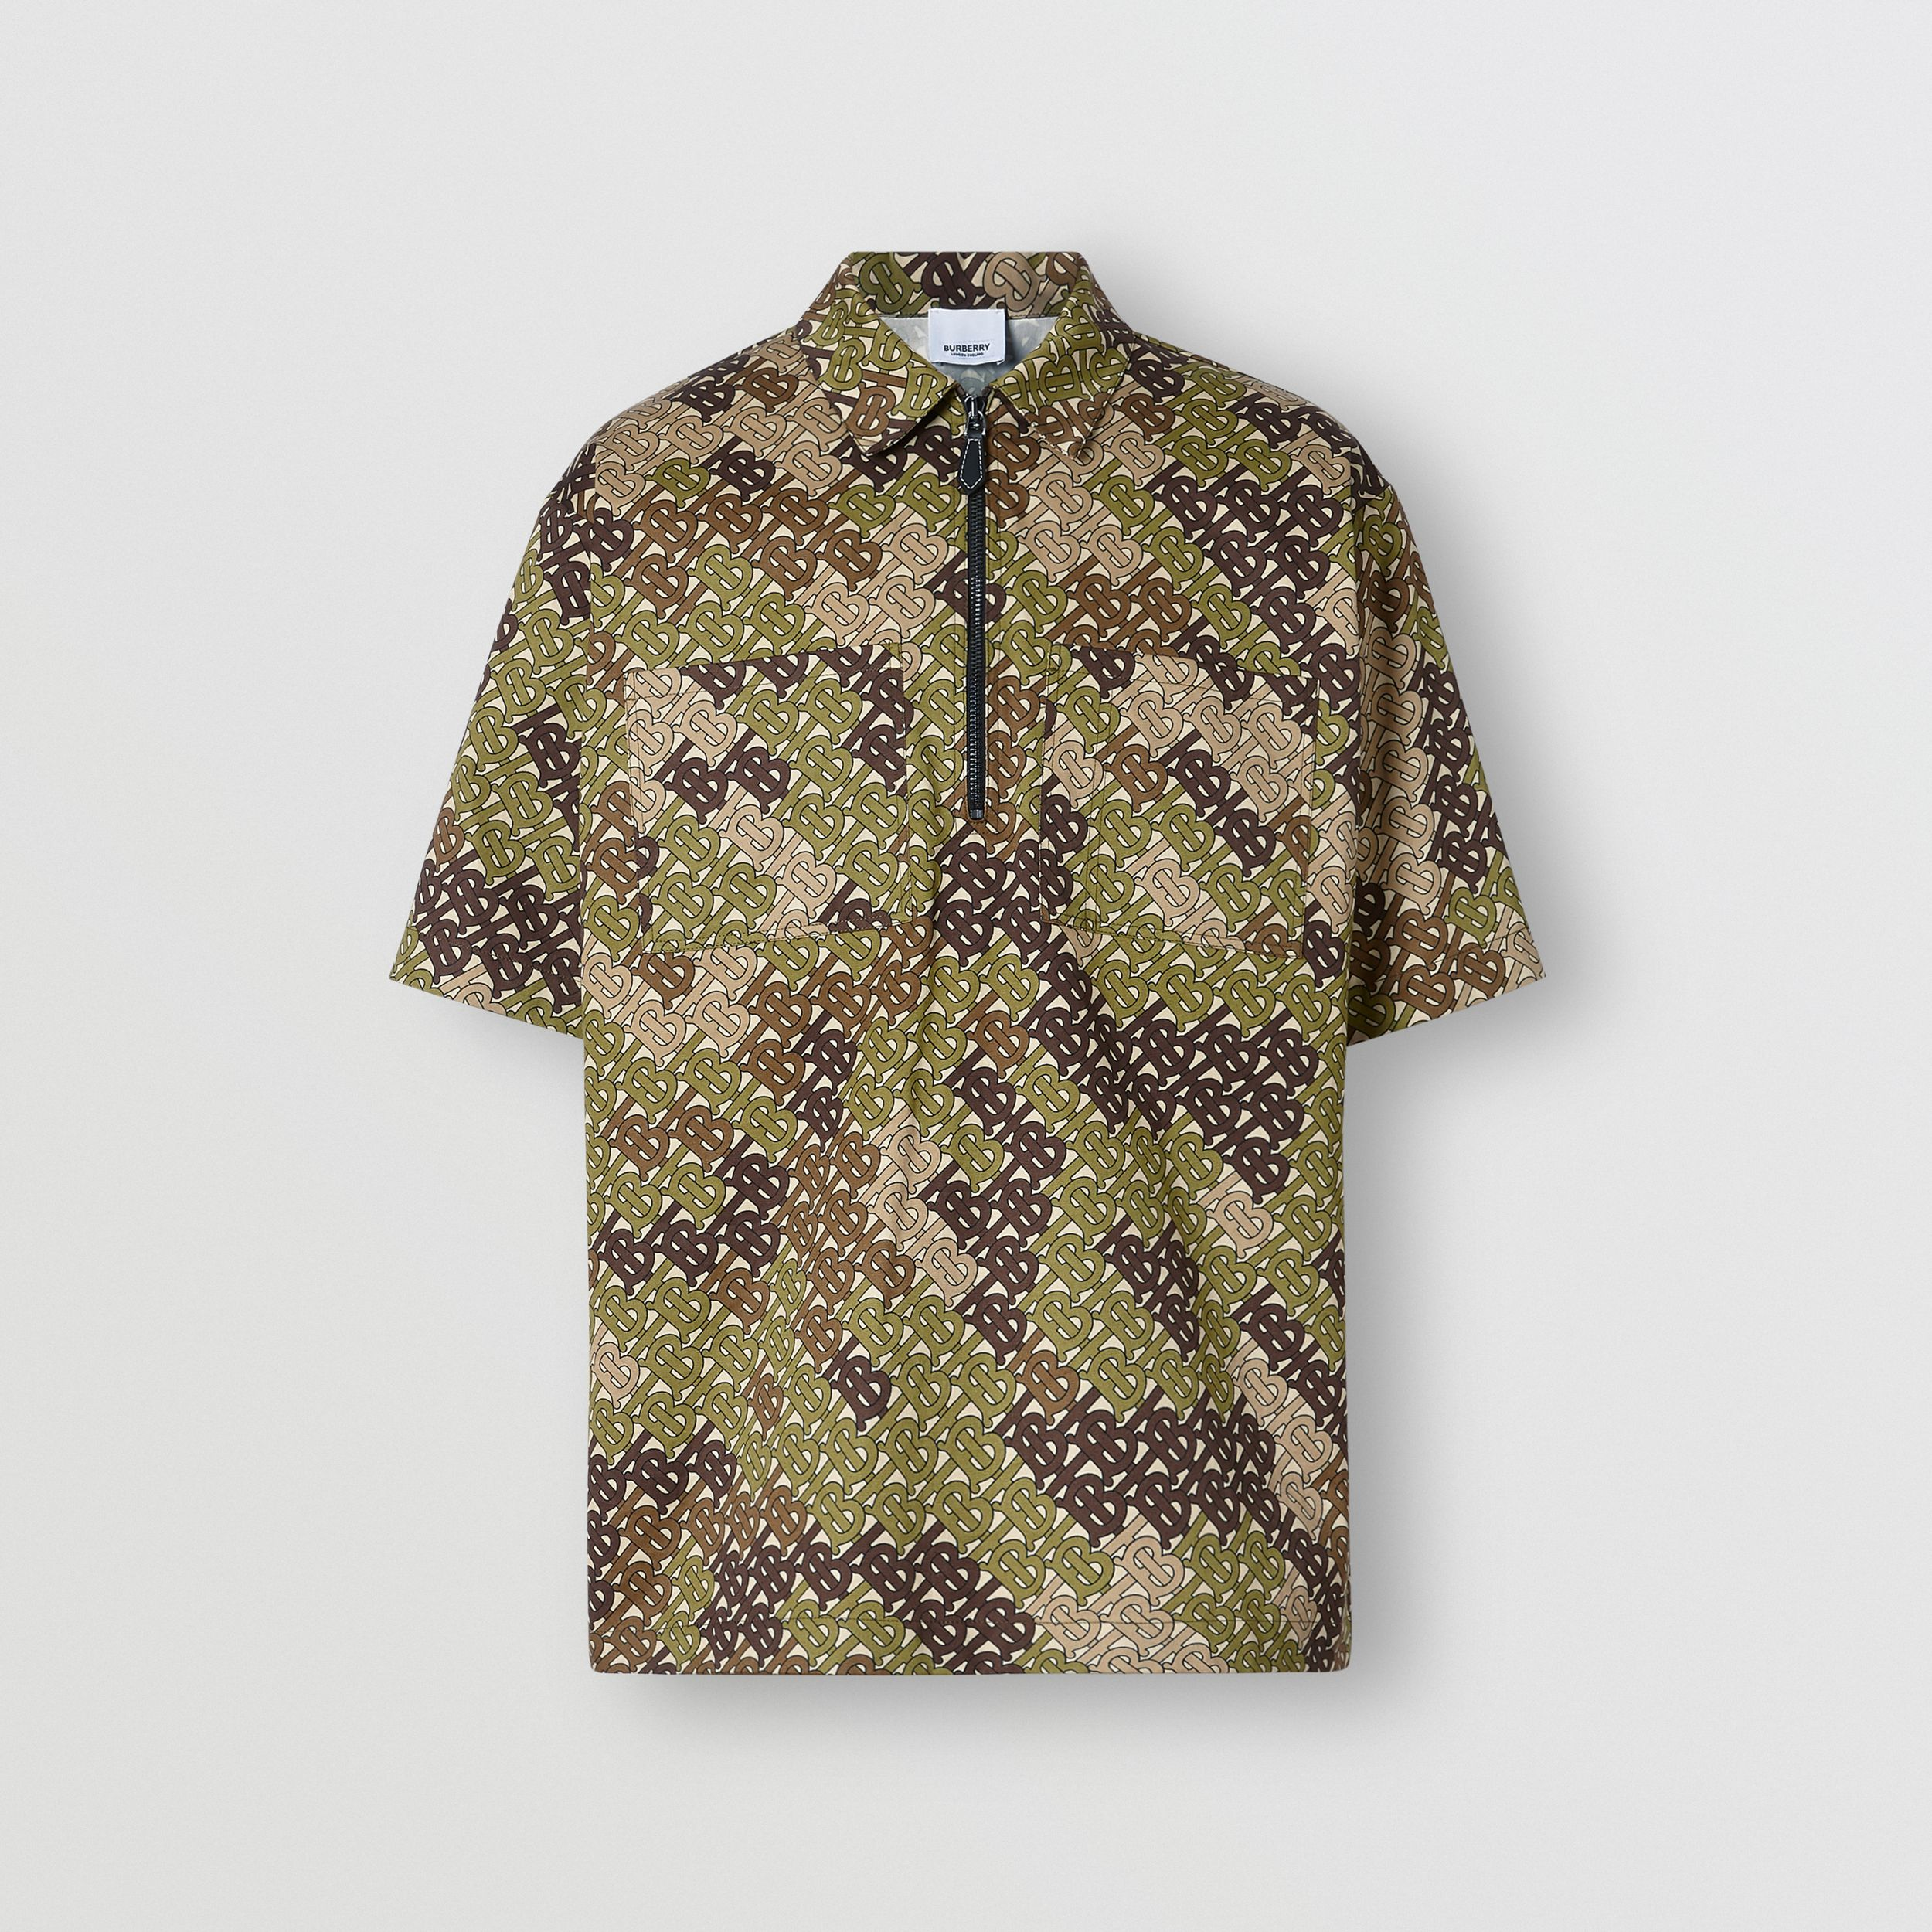 Short-sleeve Monogram Print Cotton Shirt in Khaki Green - Men | Burberry Hong Kong S.A.R. - 4